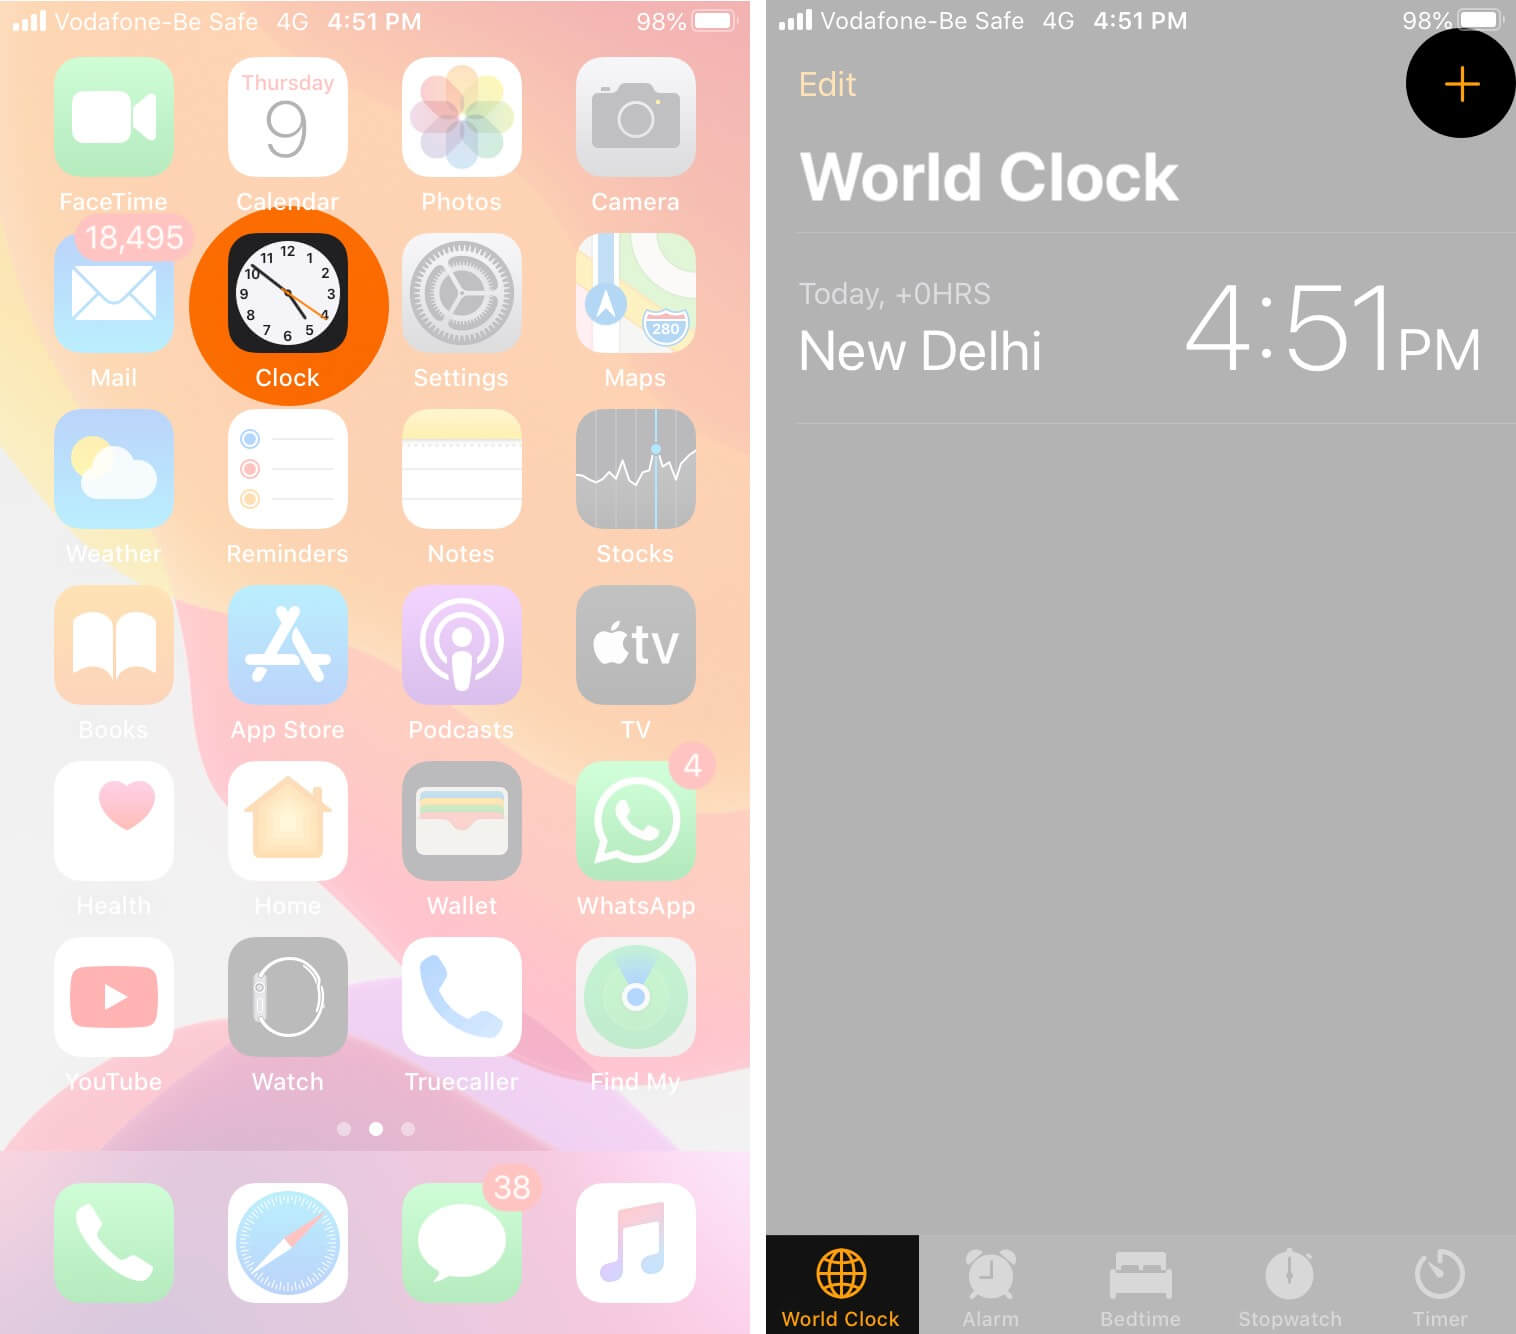 Open Clock App and Tap on Plus on iPhone